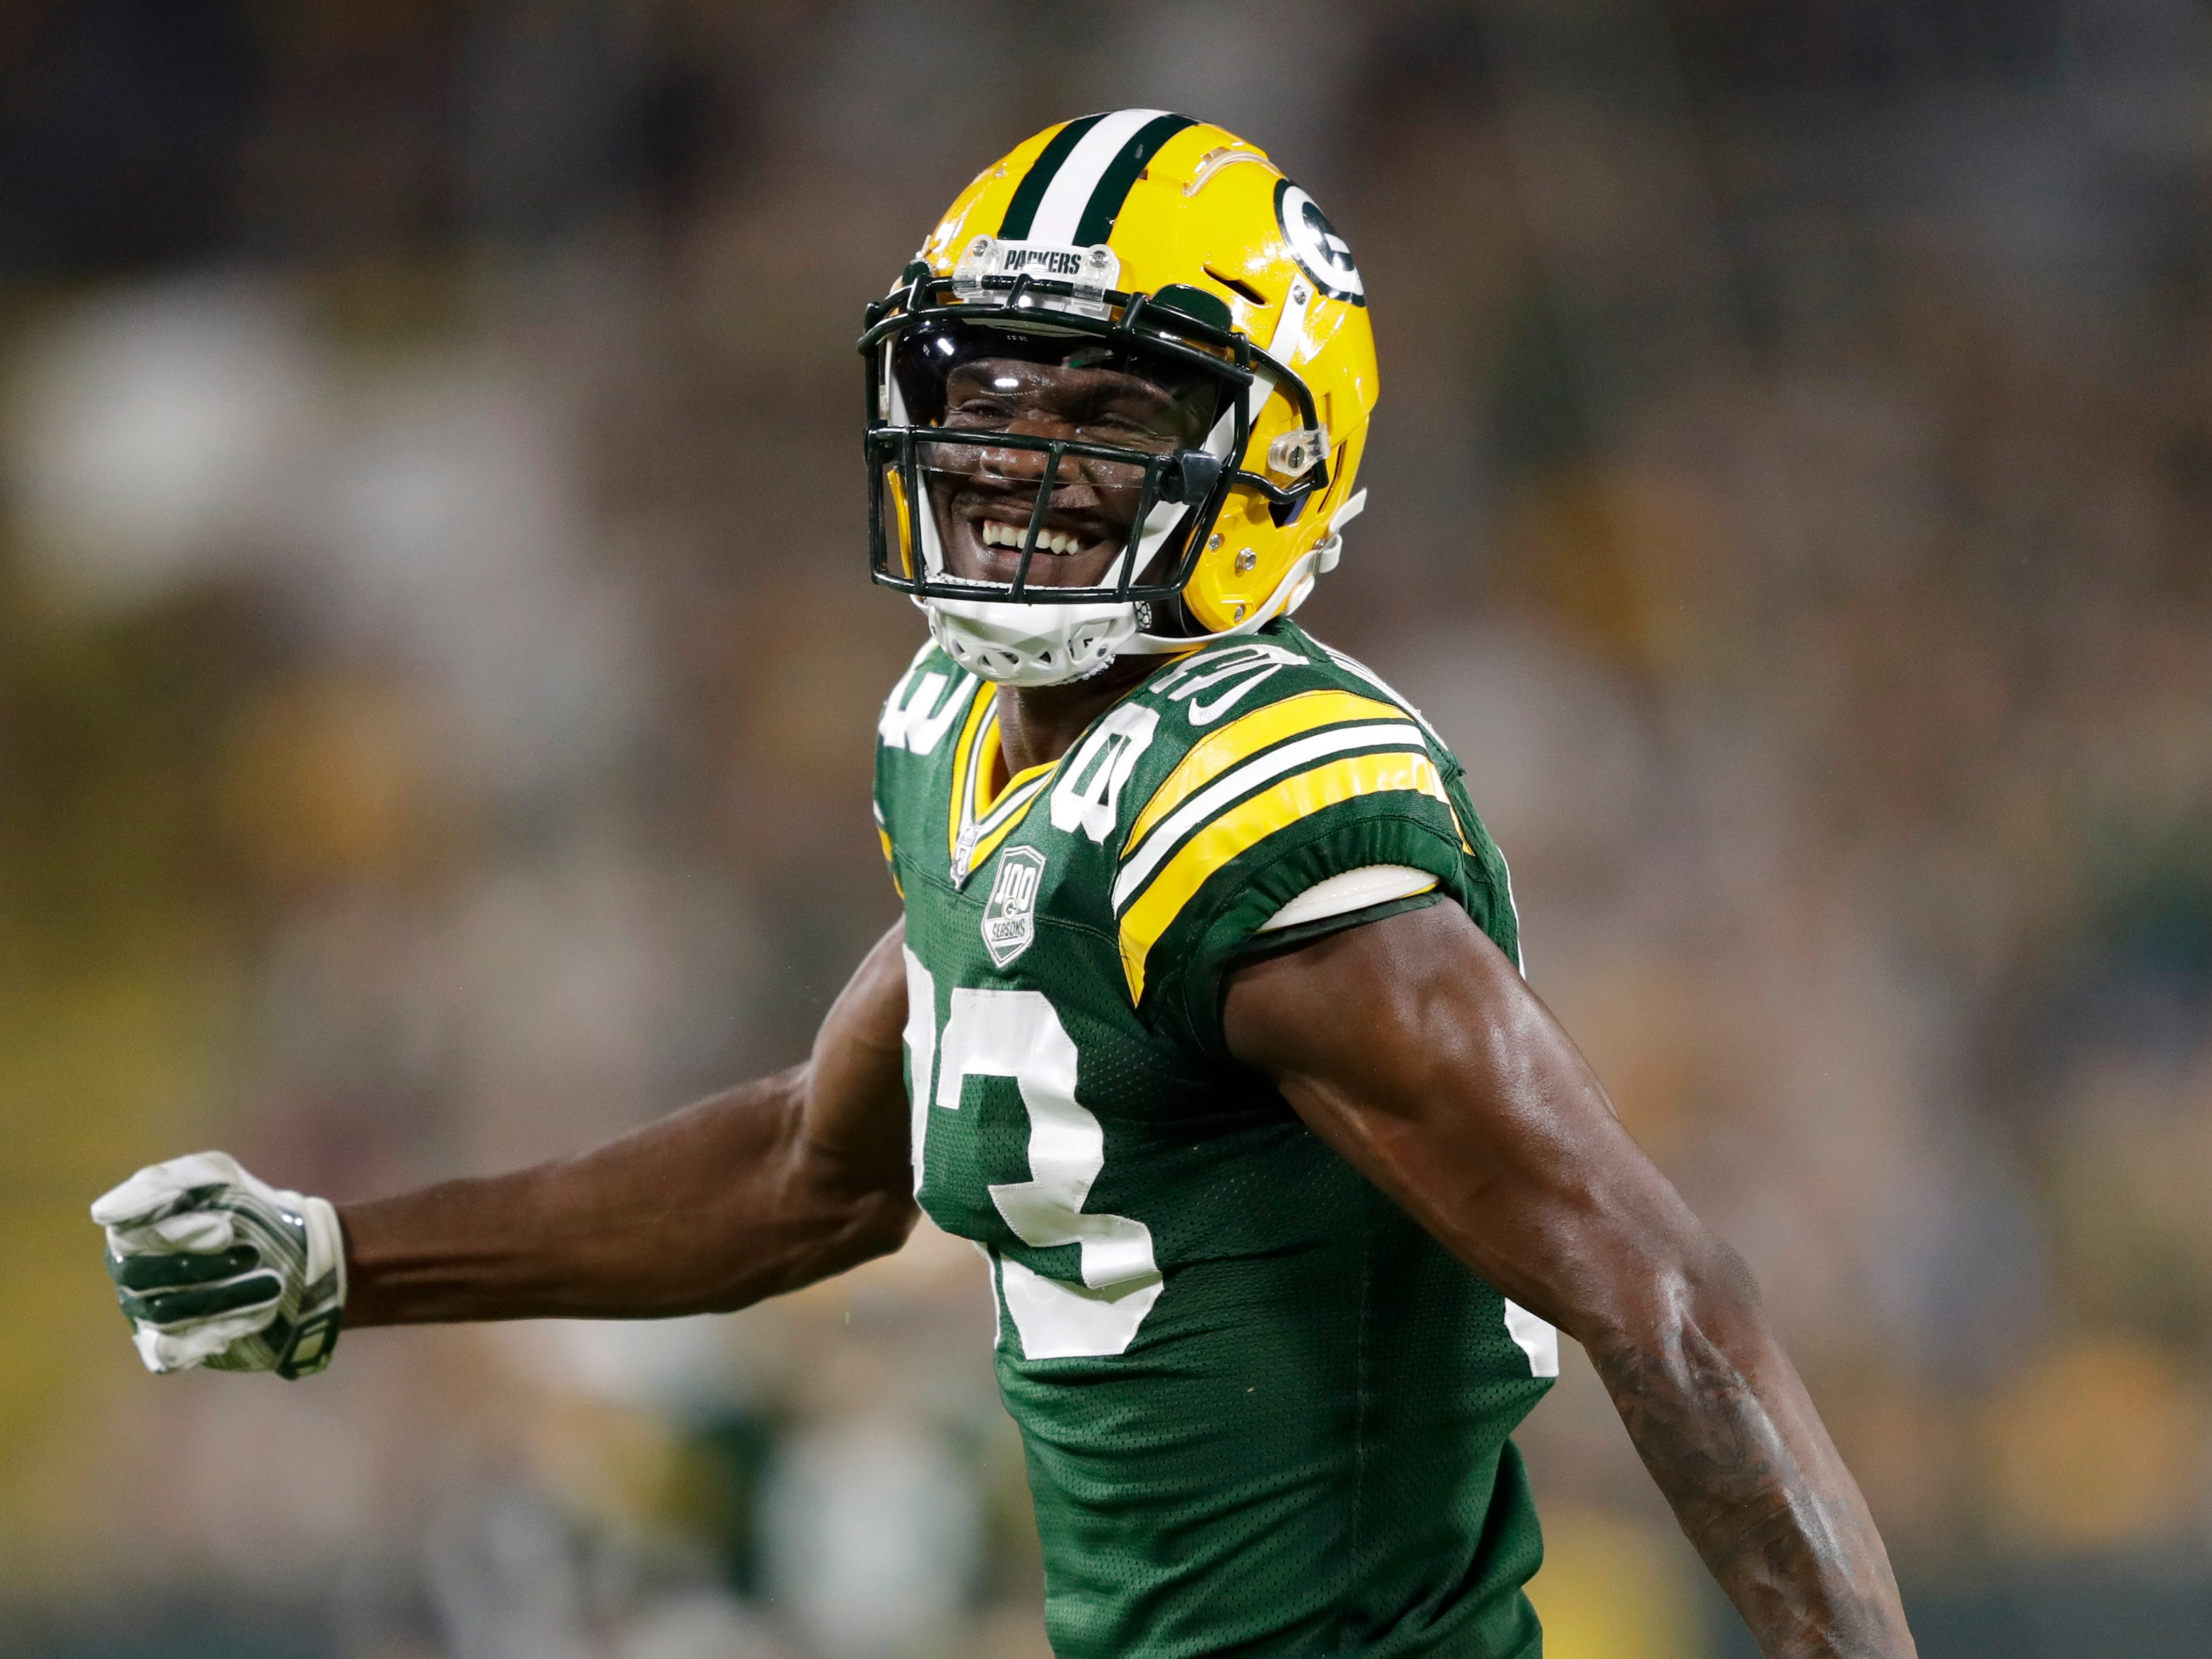 Green Bay Packers wide receiver Marquez Valdes-Scantling (83) celebrates a long reception in the third quarter against the Tennessee Titans during their football game Thursday, August 9, 2018, at Lambeau Field in Green Bay, Wis.